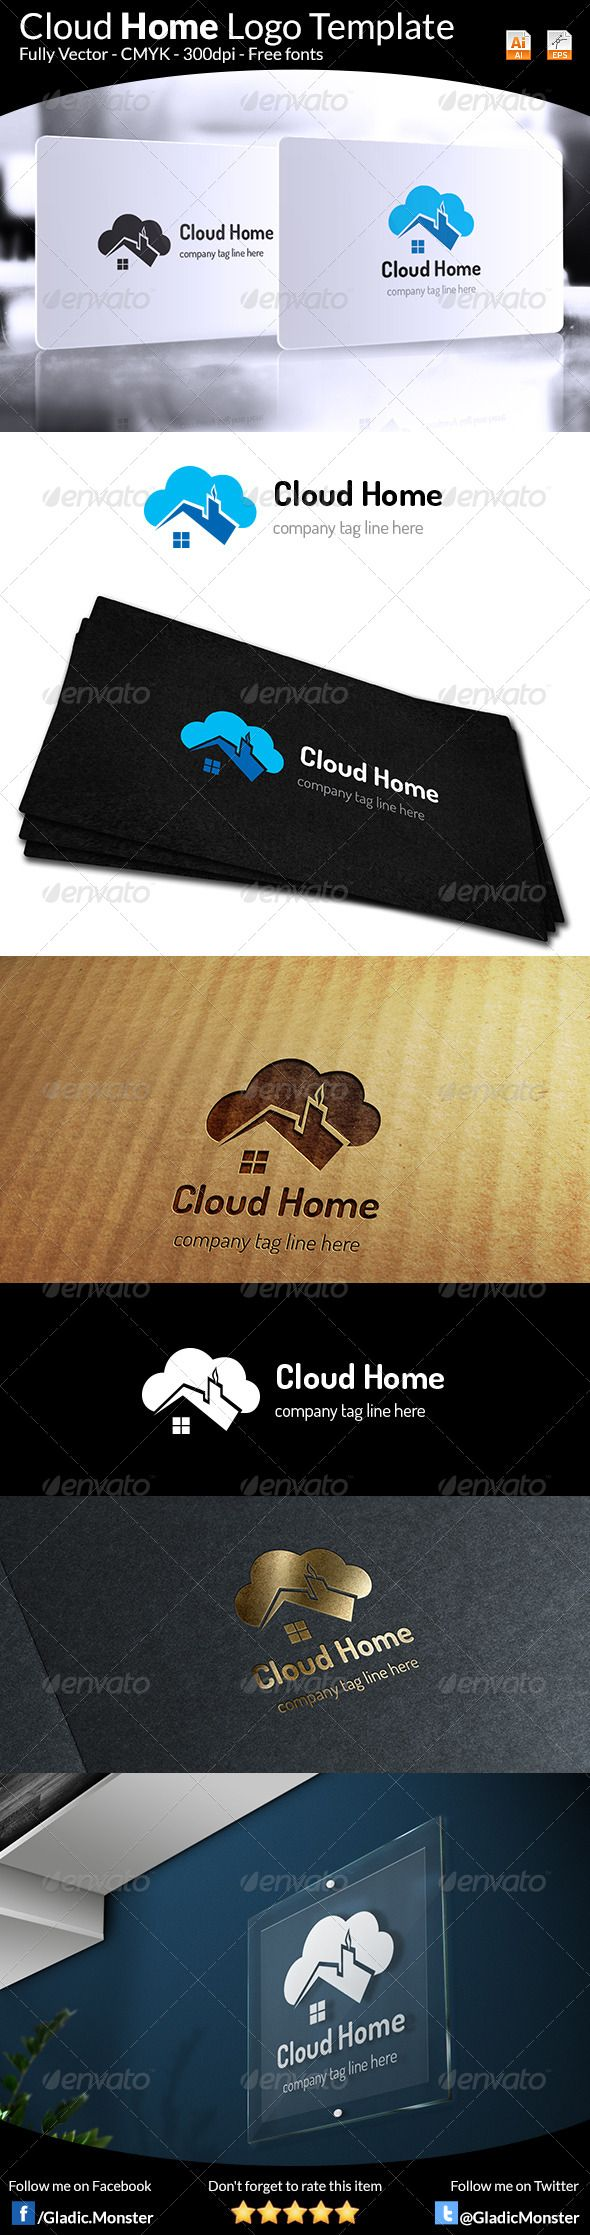 Cloud Home Real Estate Logo — Vector EPS #modern #house • Available here → https://graphicriver.net/item/cloud-home-real-estate-logo/6574385?ref=pxcr